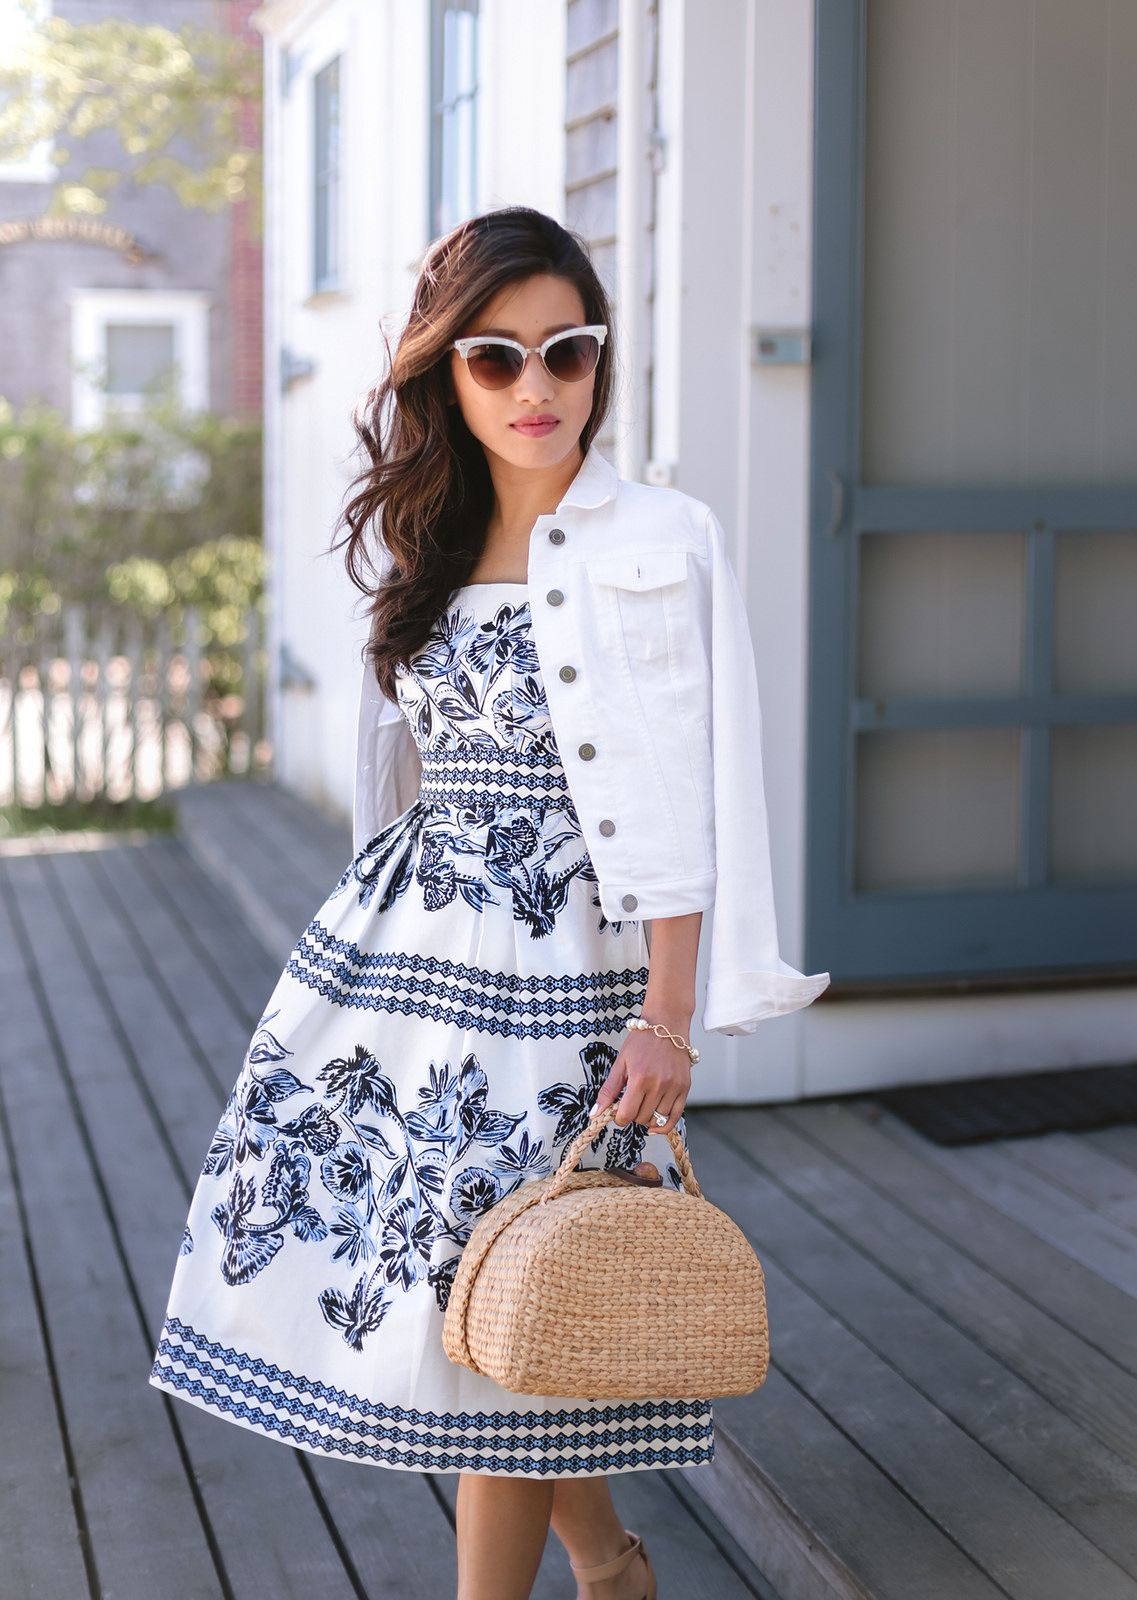 c3c61152b4ae6 nantucket classic new england style outfit straw basket bag Summer Outfits  Modest Classy